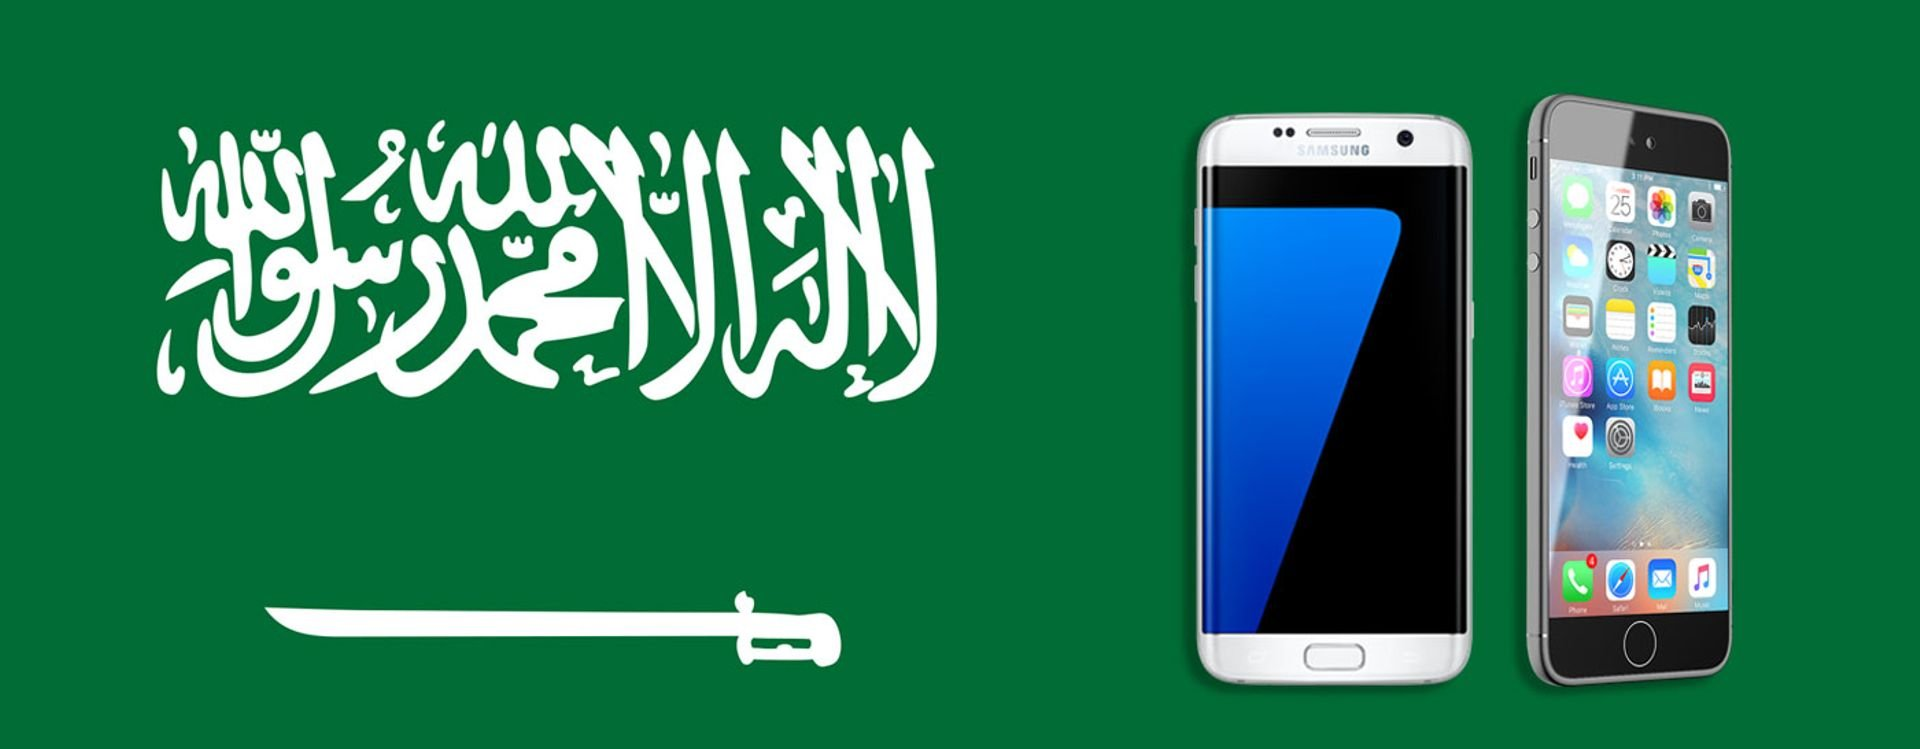 Competition between smartphones in Saudi Arabia is not limited to Samsung and iPhone.